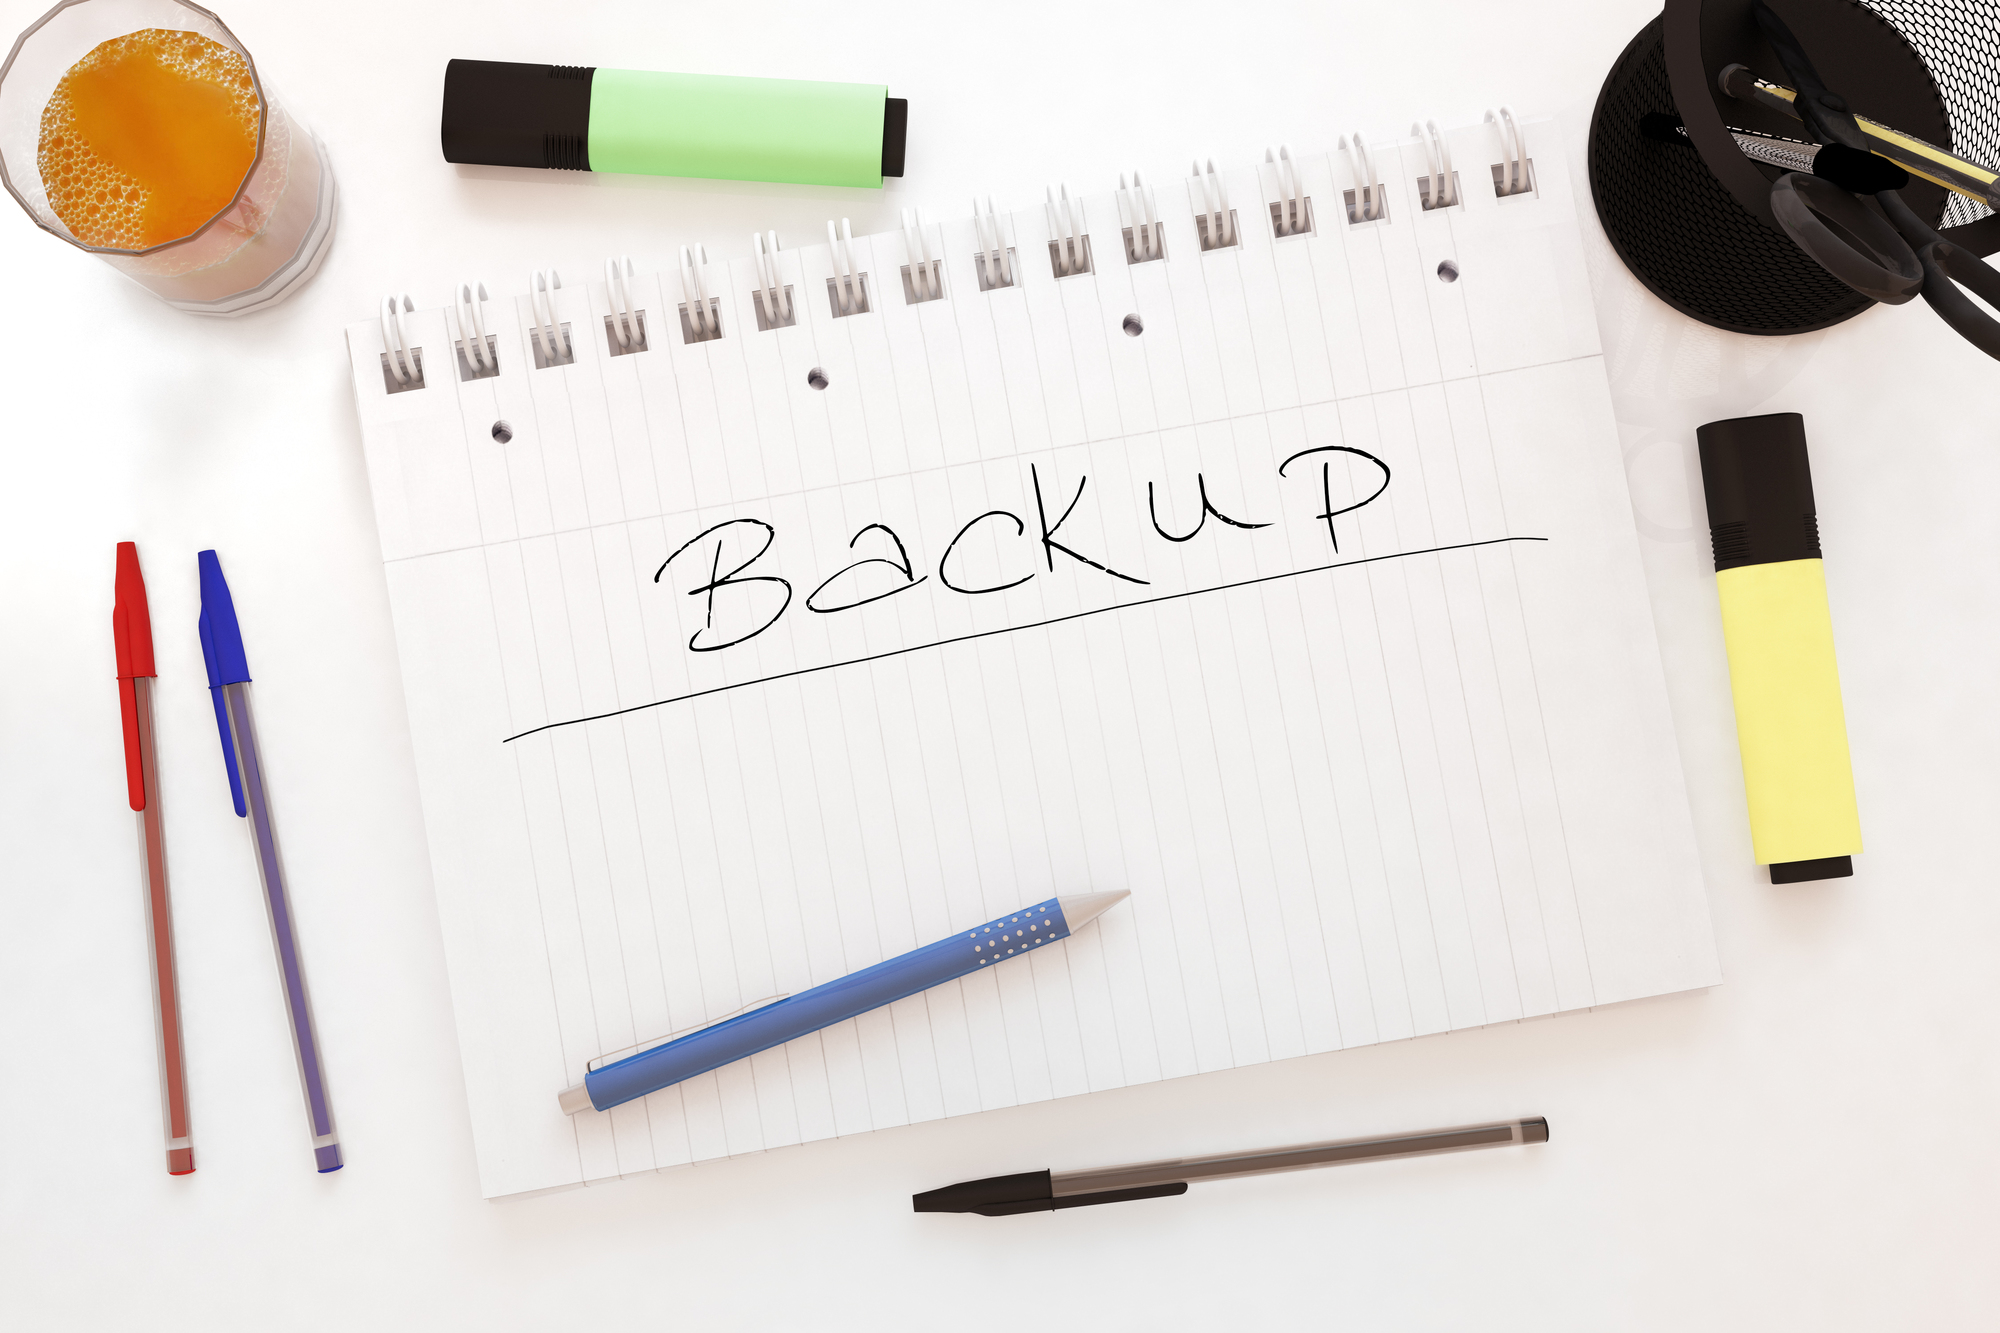 Backup - handwritten text in a notebook on a desk - 3d render illustration.